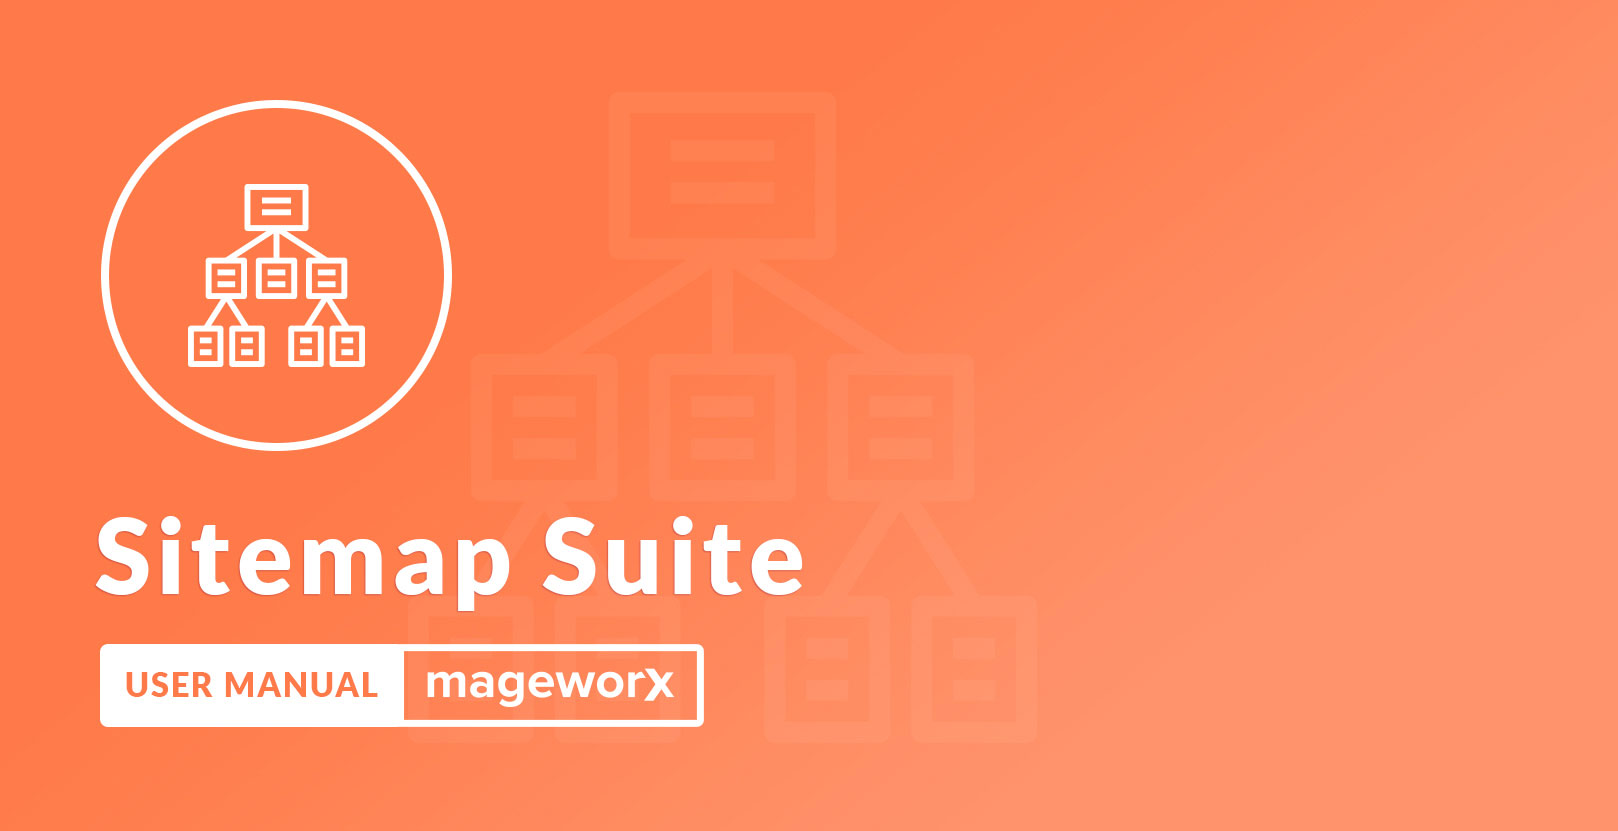 magento 2 sitemap suite user guide mageworx